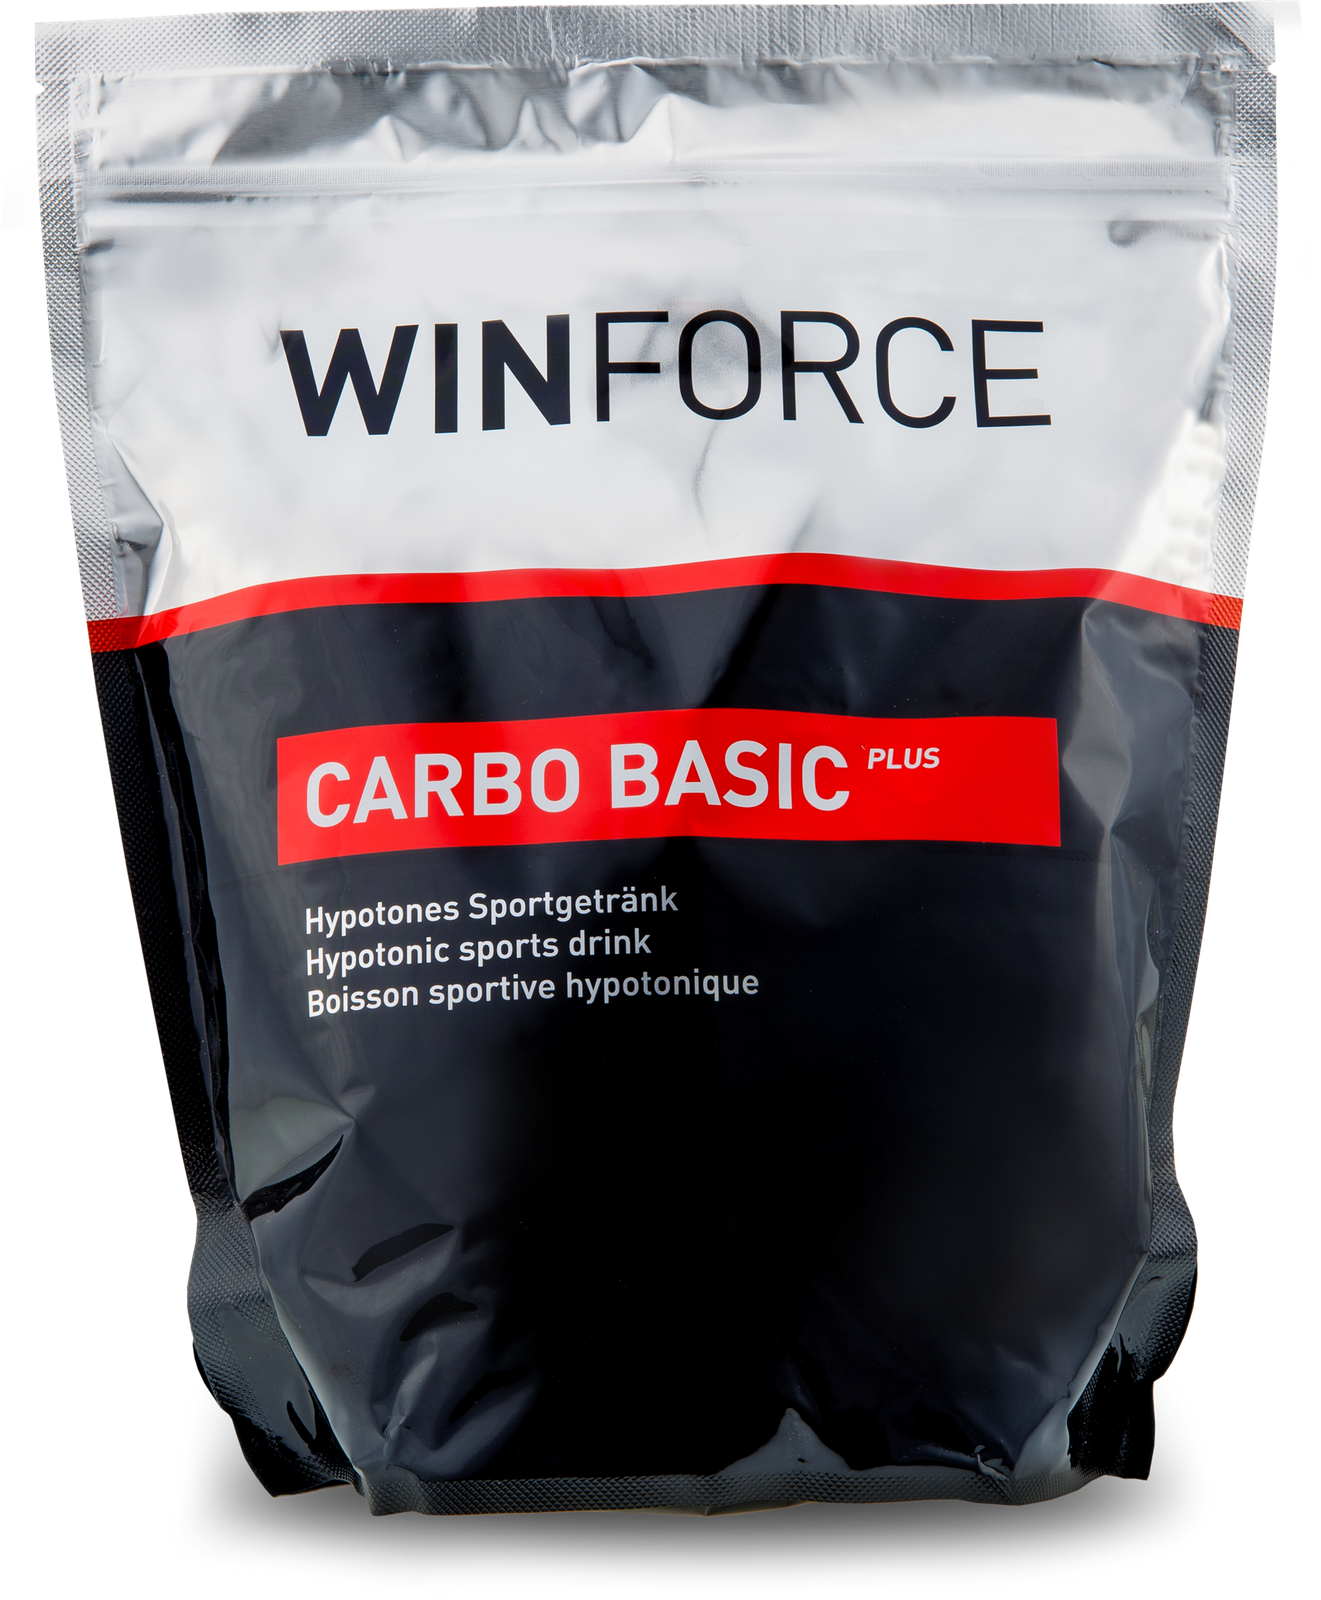 Carbo Basic Plus Fersken - pose